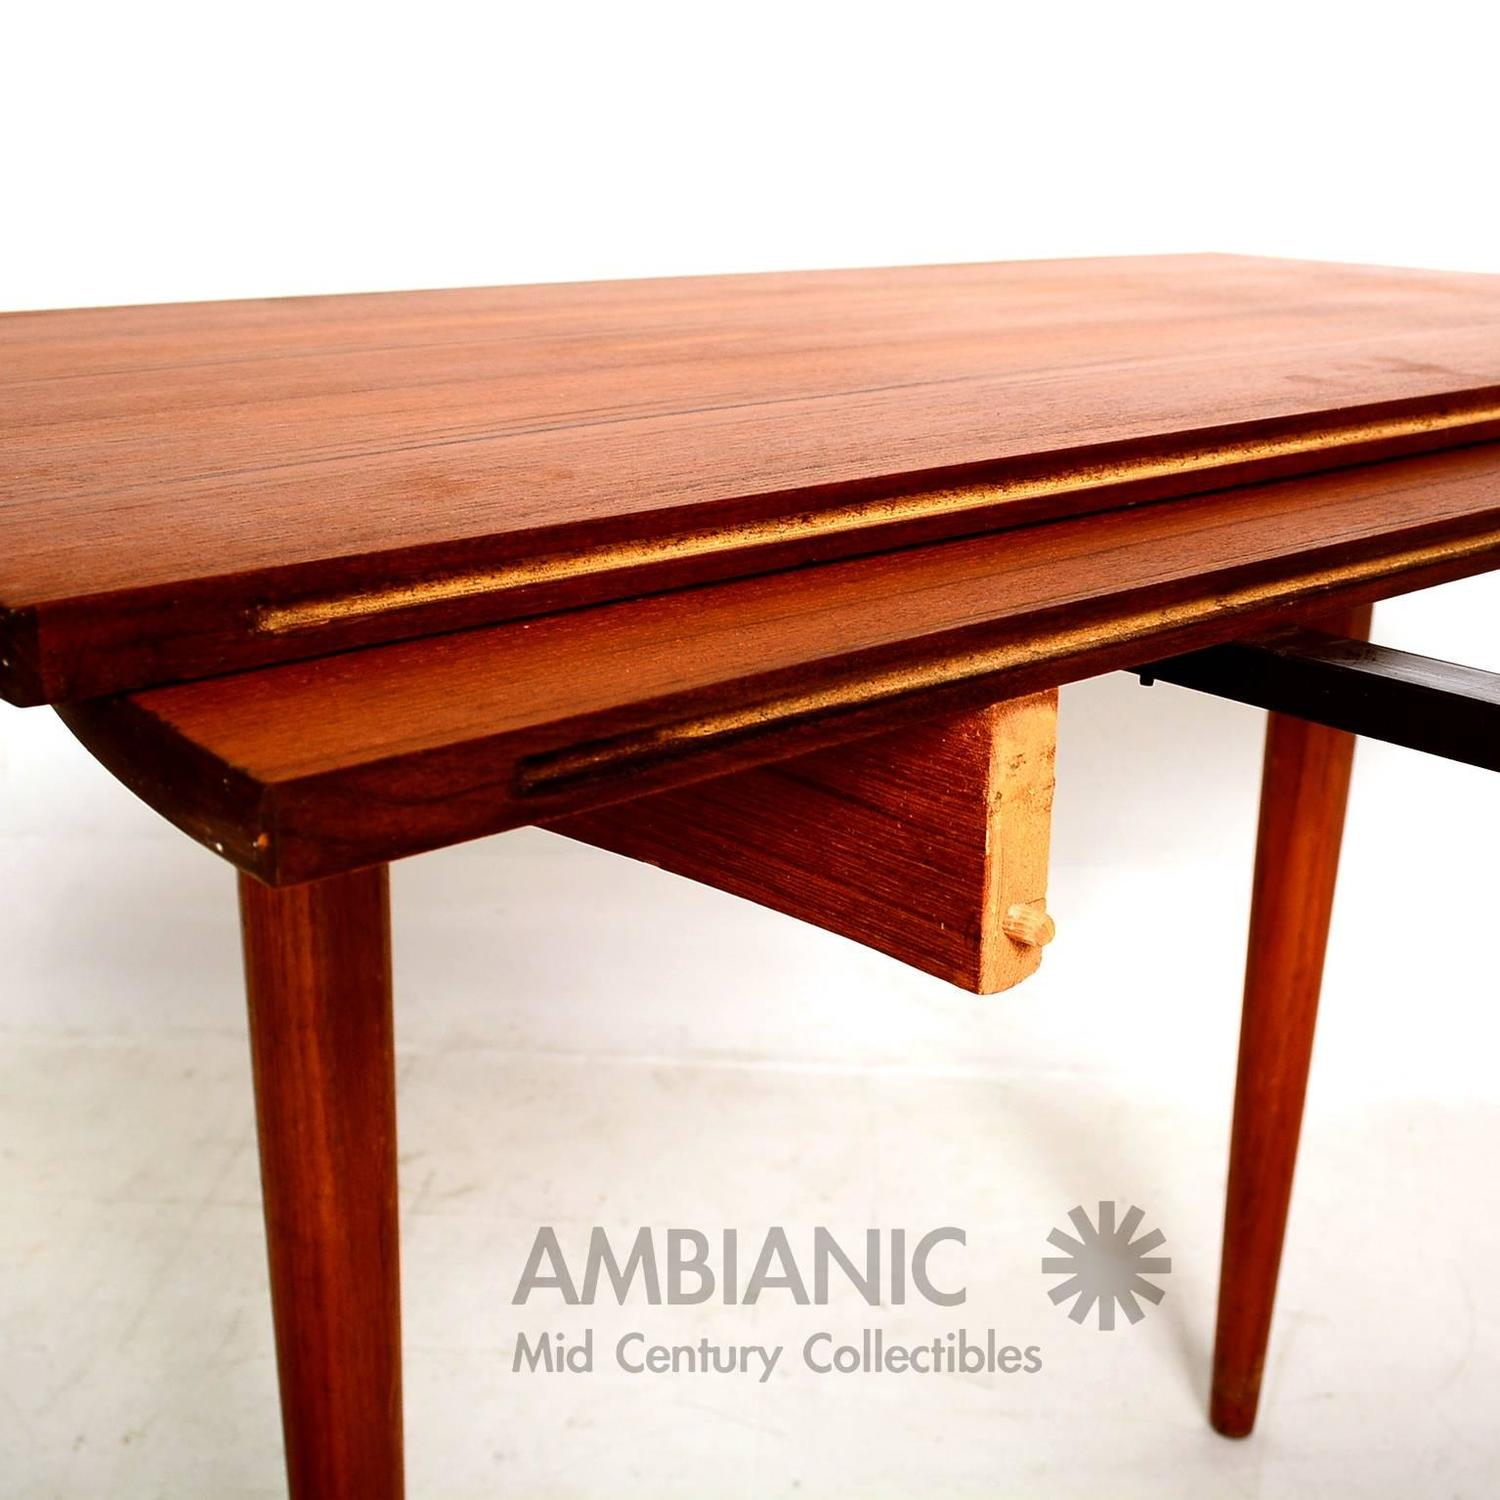 Danish modern teak round oval dining table for sale at 1stdibs for Modern oval dining room table